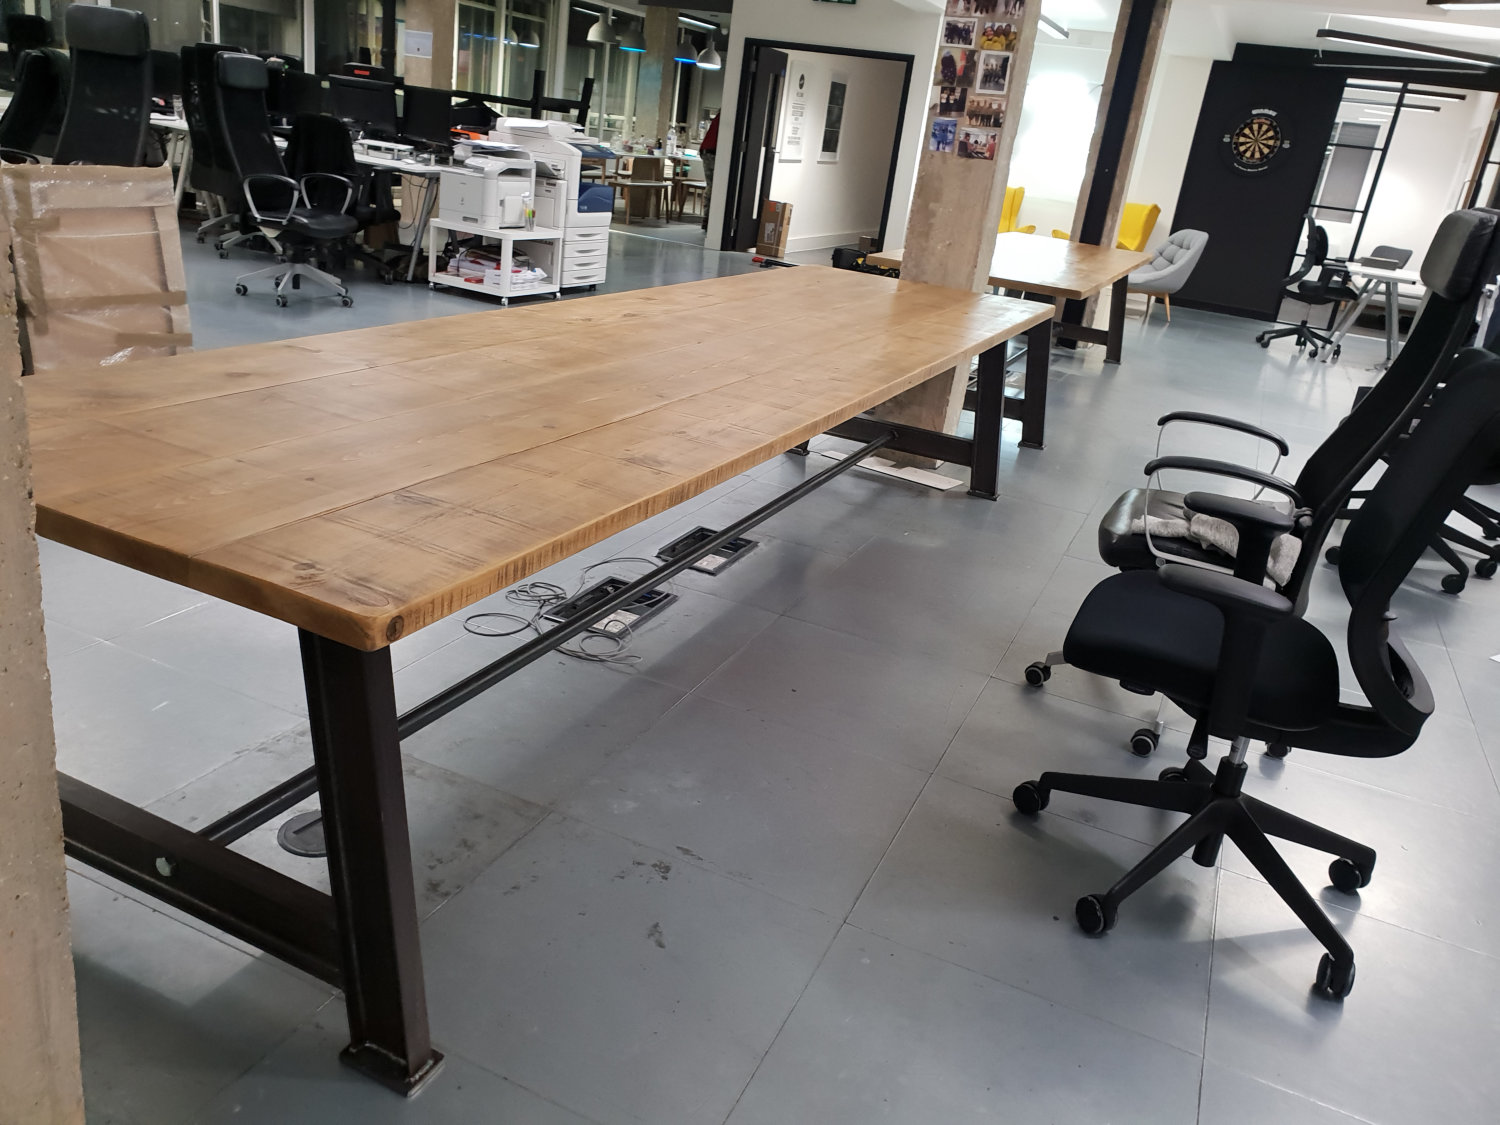 Another Busy Day Installing These Bespoke Office Tables